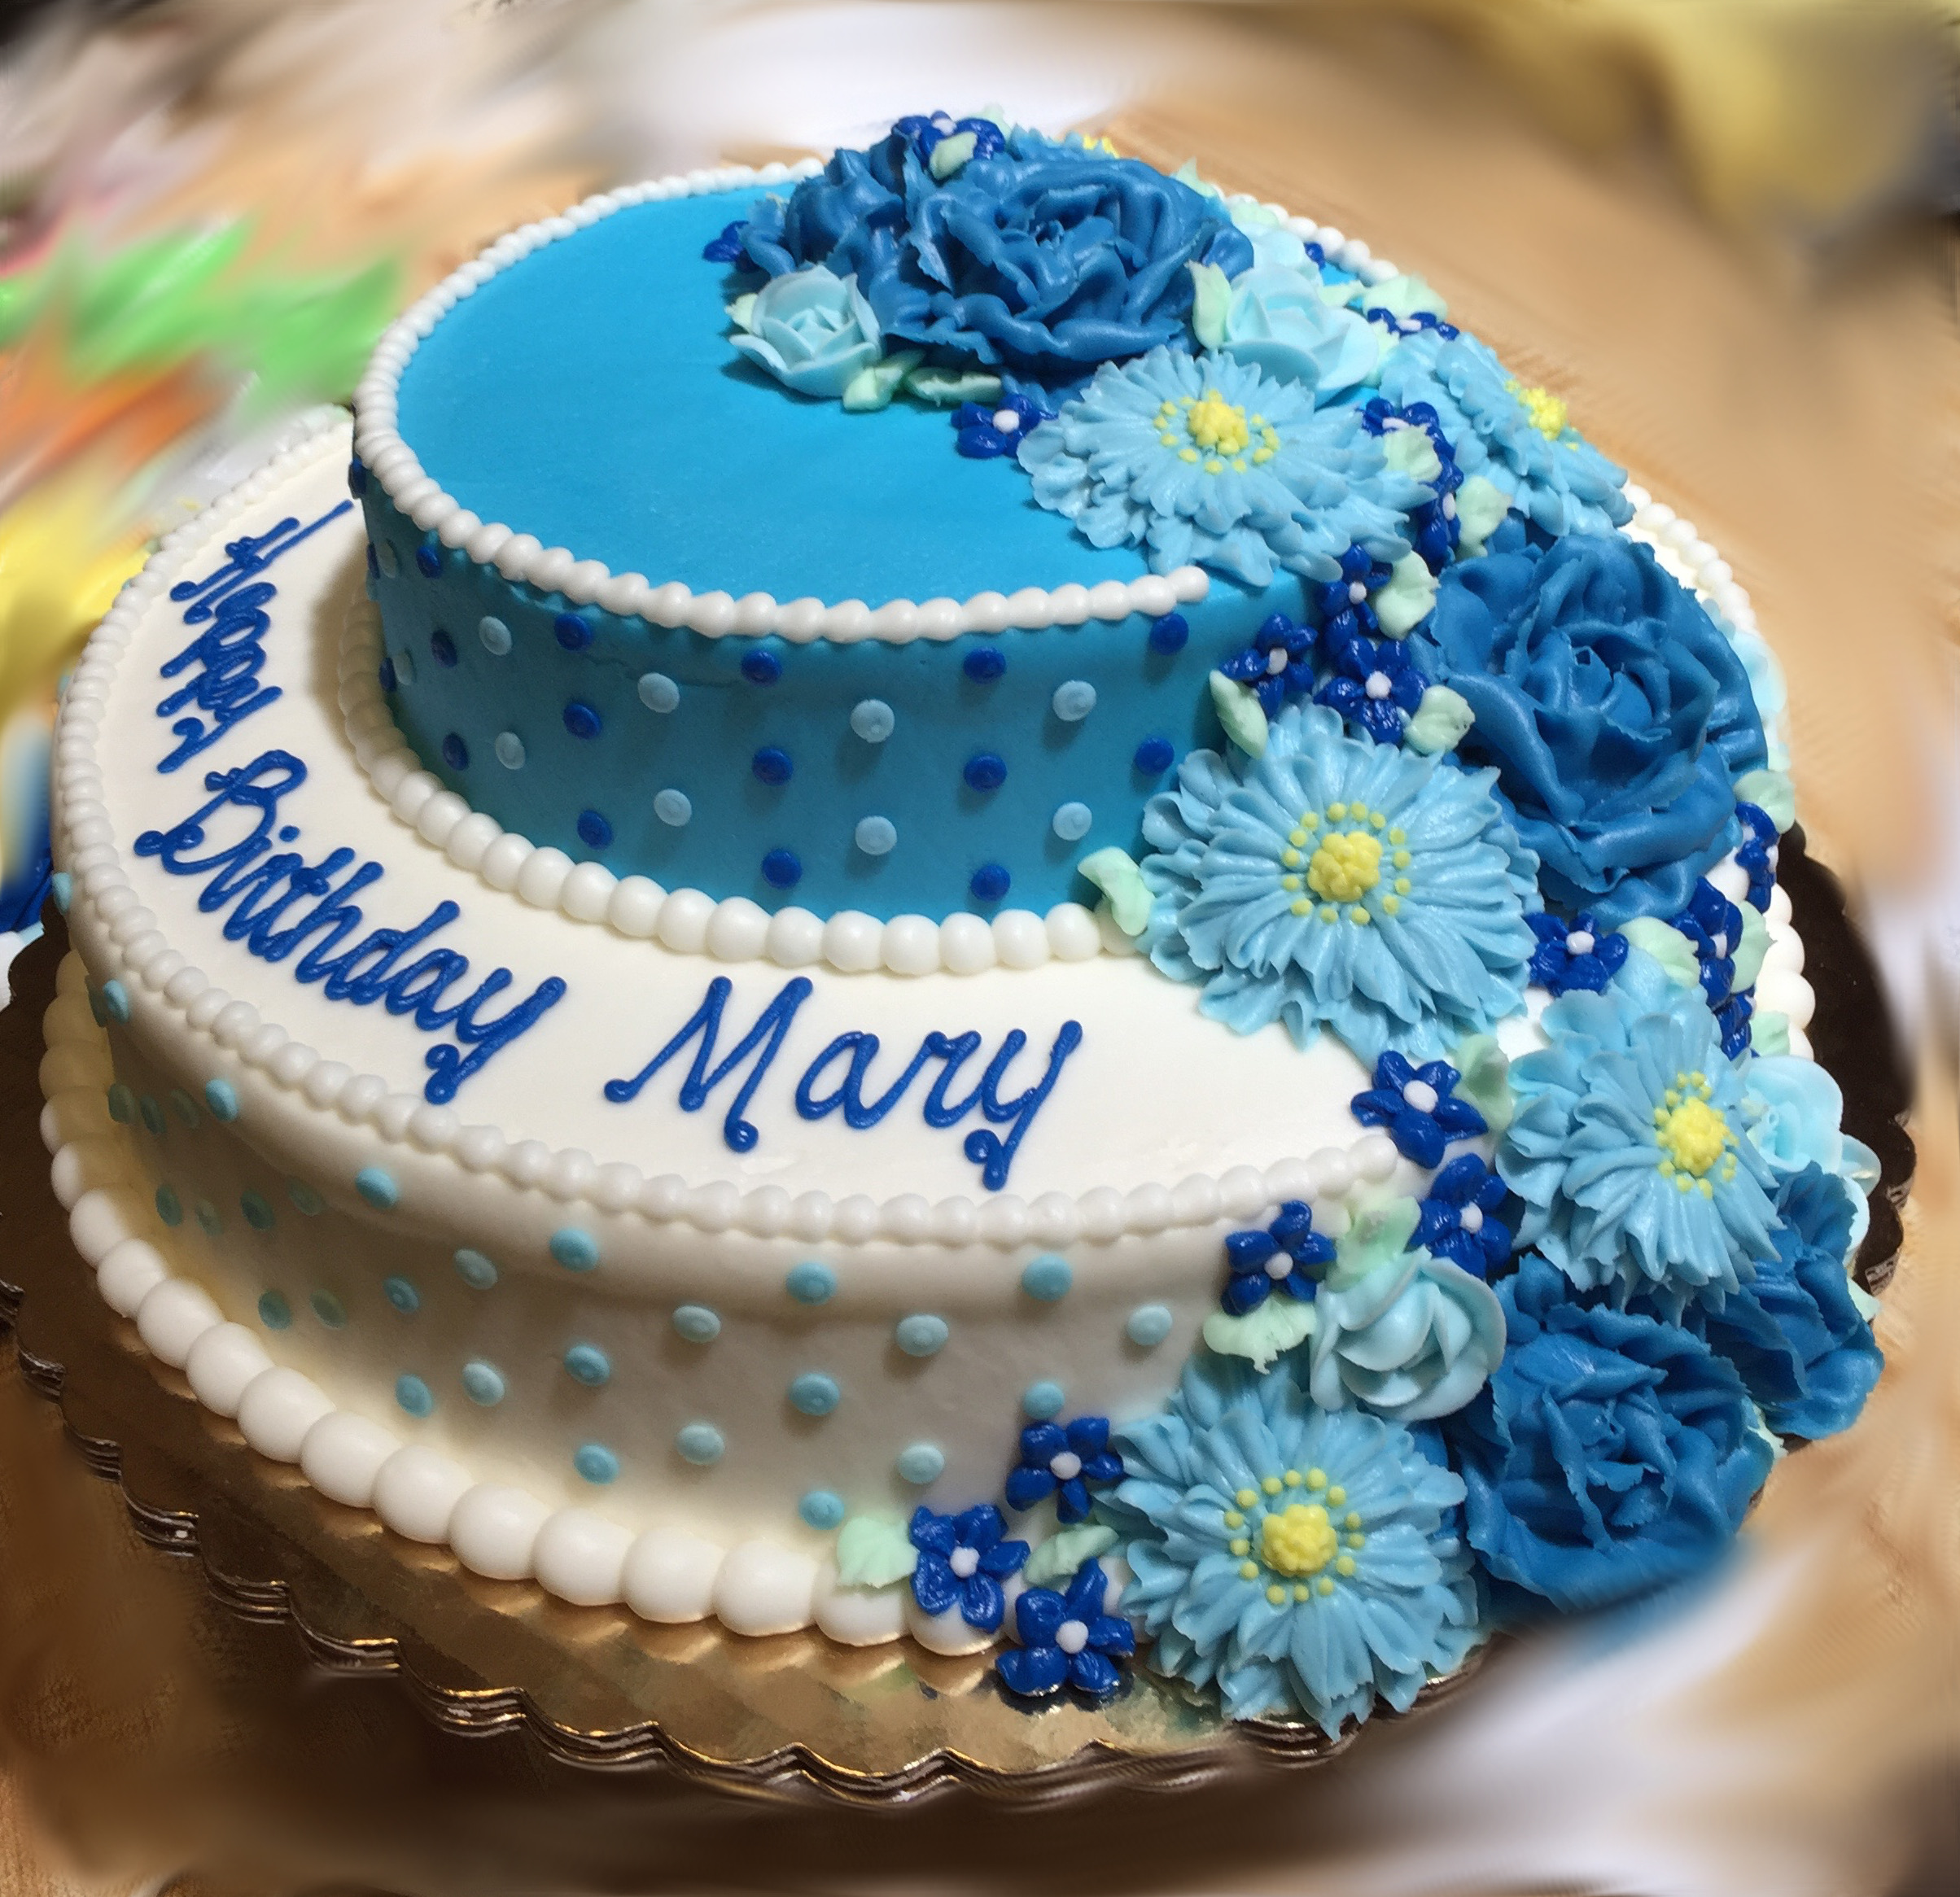 2 Tier Blue & White Bday Cake 9